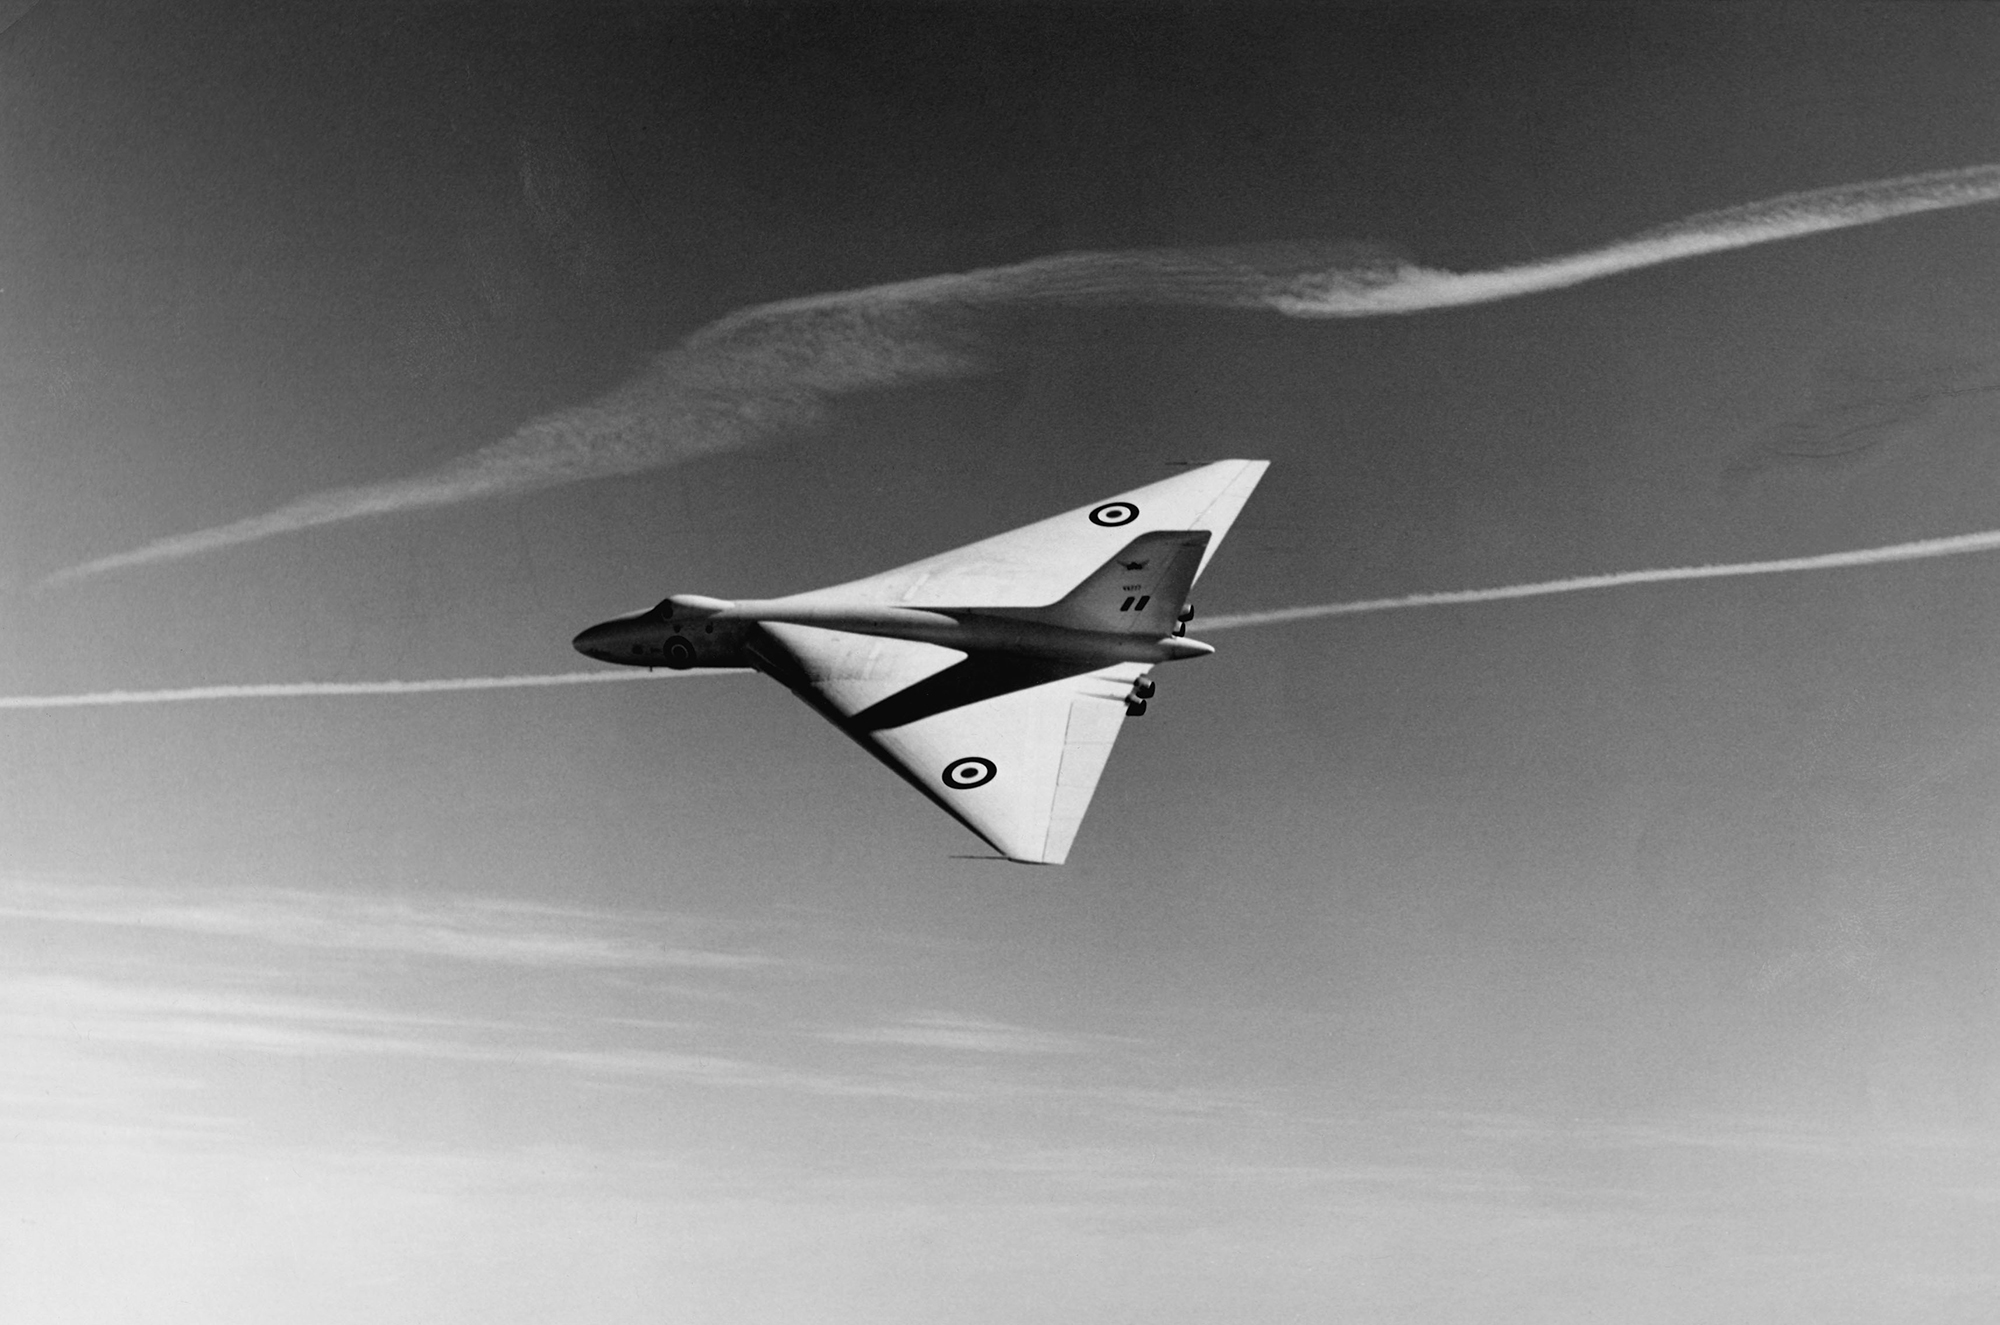 did people fly paper airplanes before real airplanes were invented